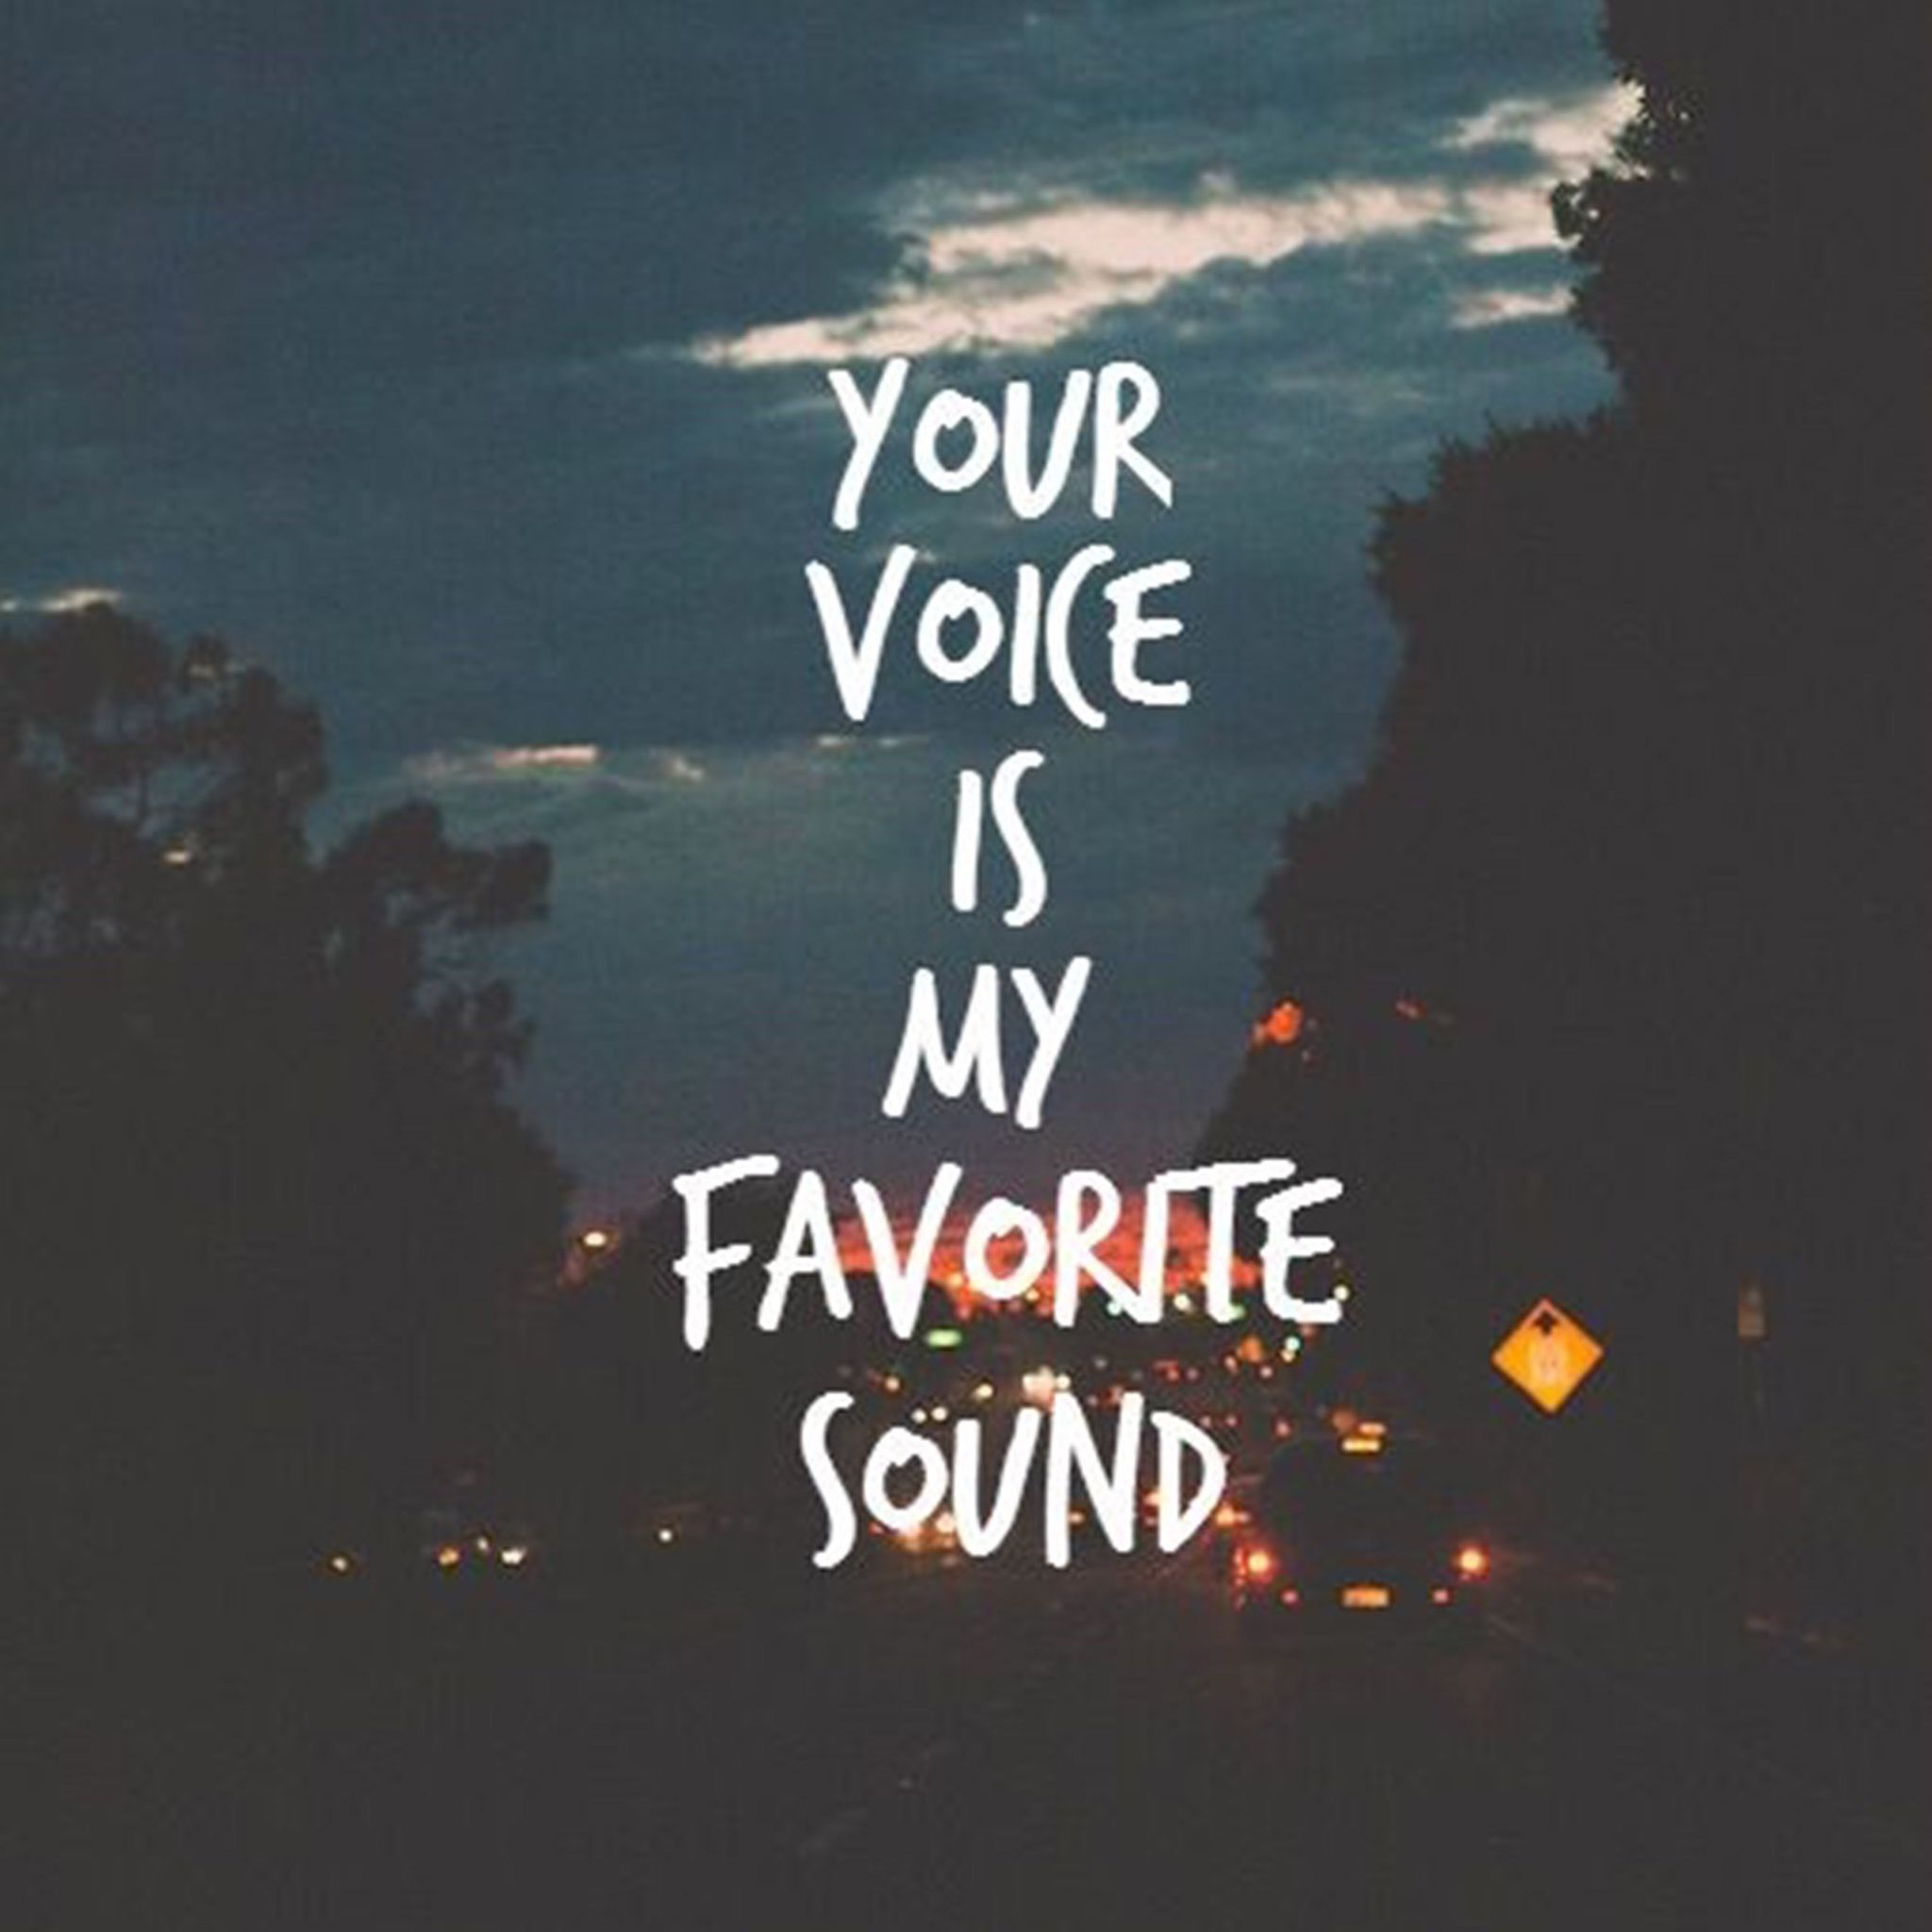 And i die to hear it. The day i hear your voice are my favorite days❤️